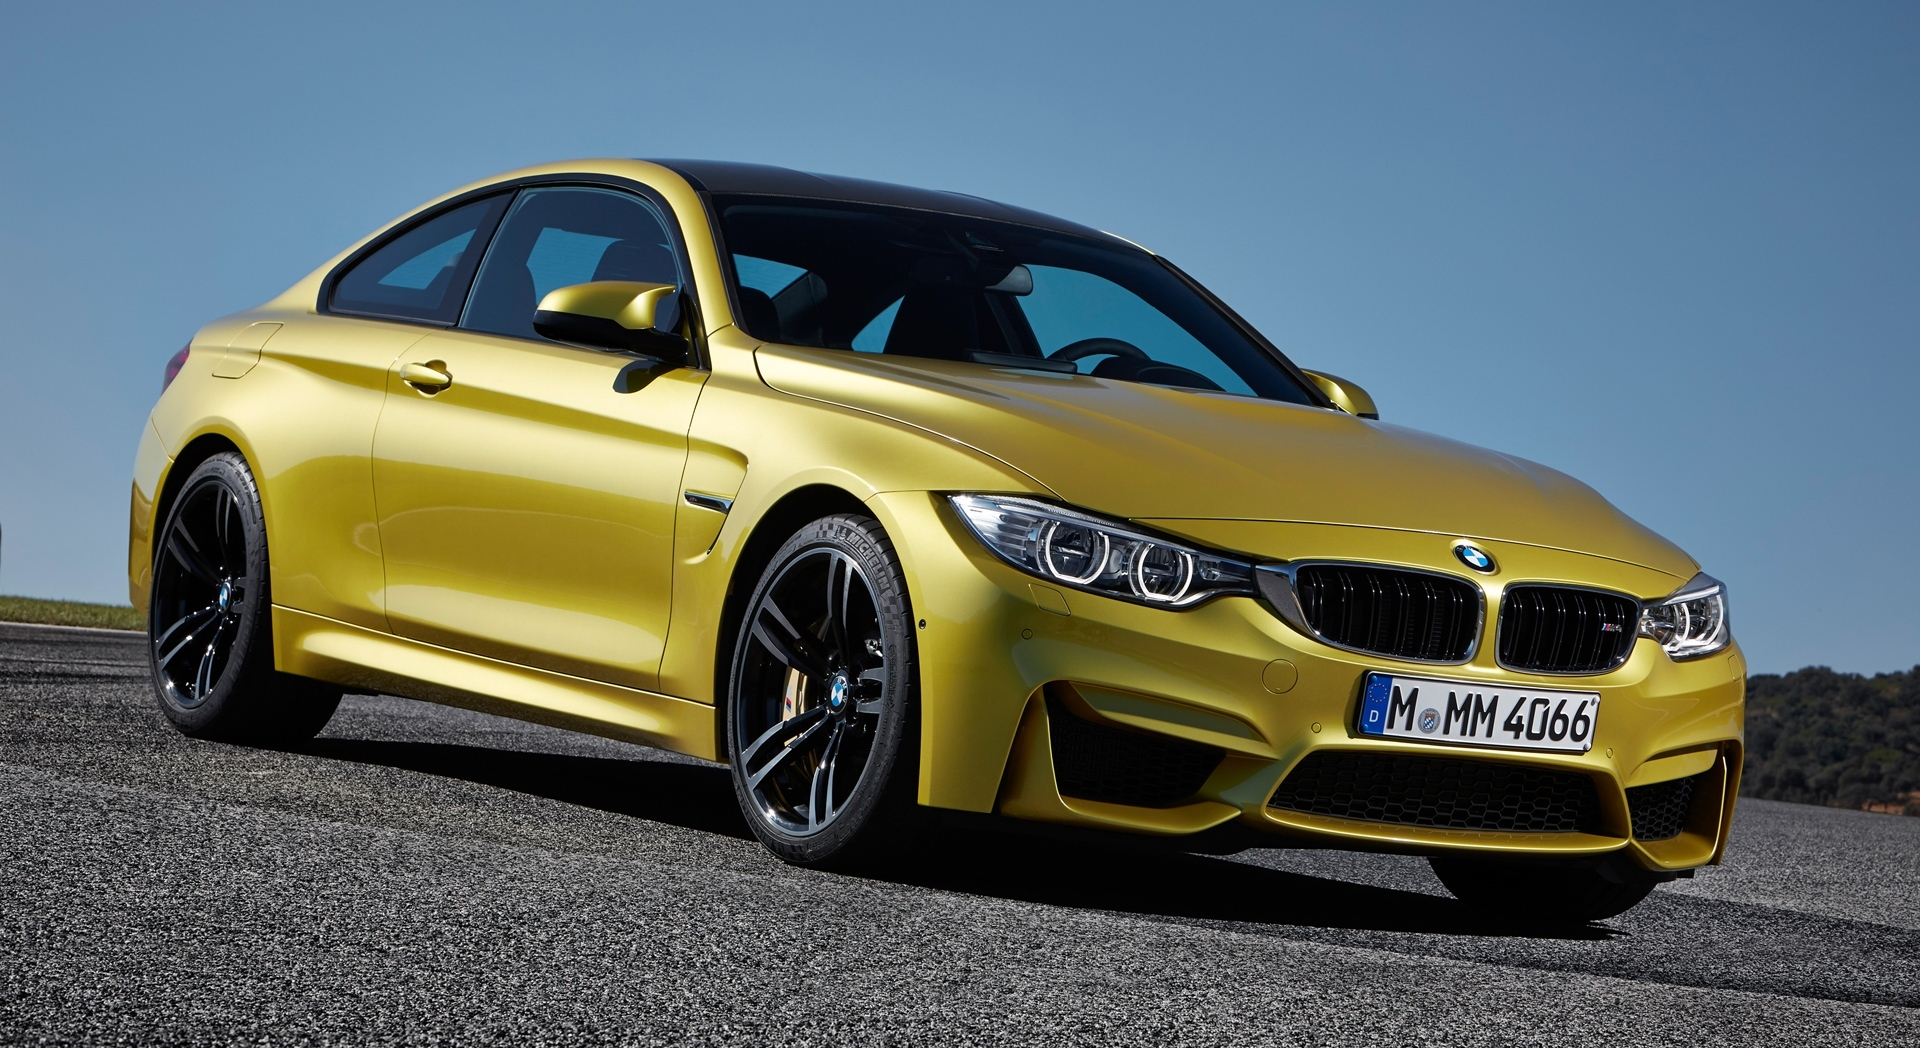 bmw m4 coupe yellow hd desktop wallpapers 4k hd. Black Bedroom Furniture Sets. Home Design Ideas